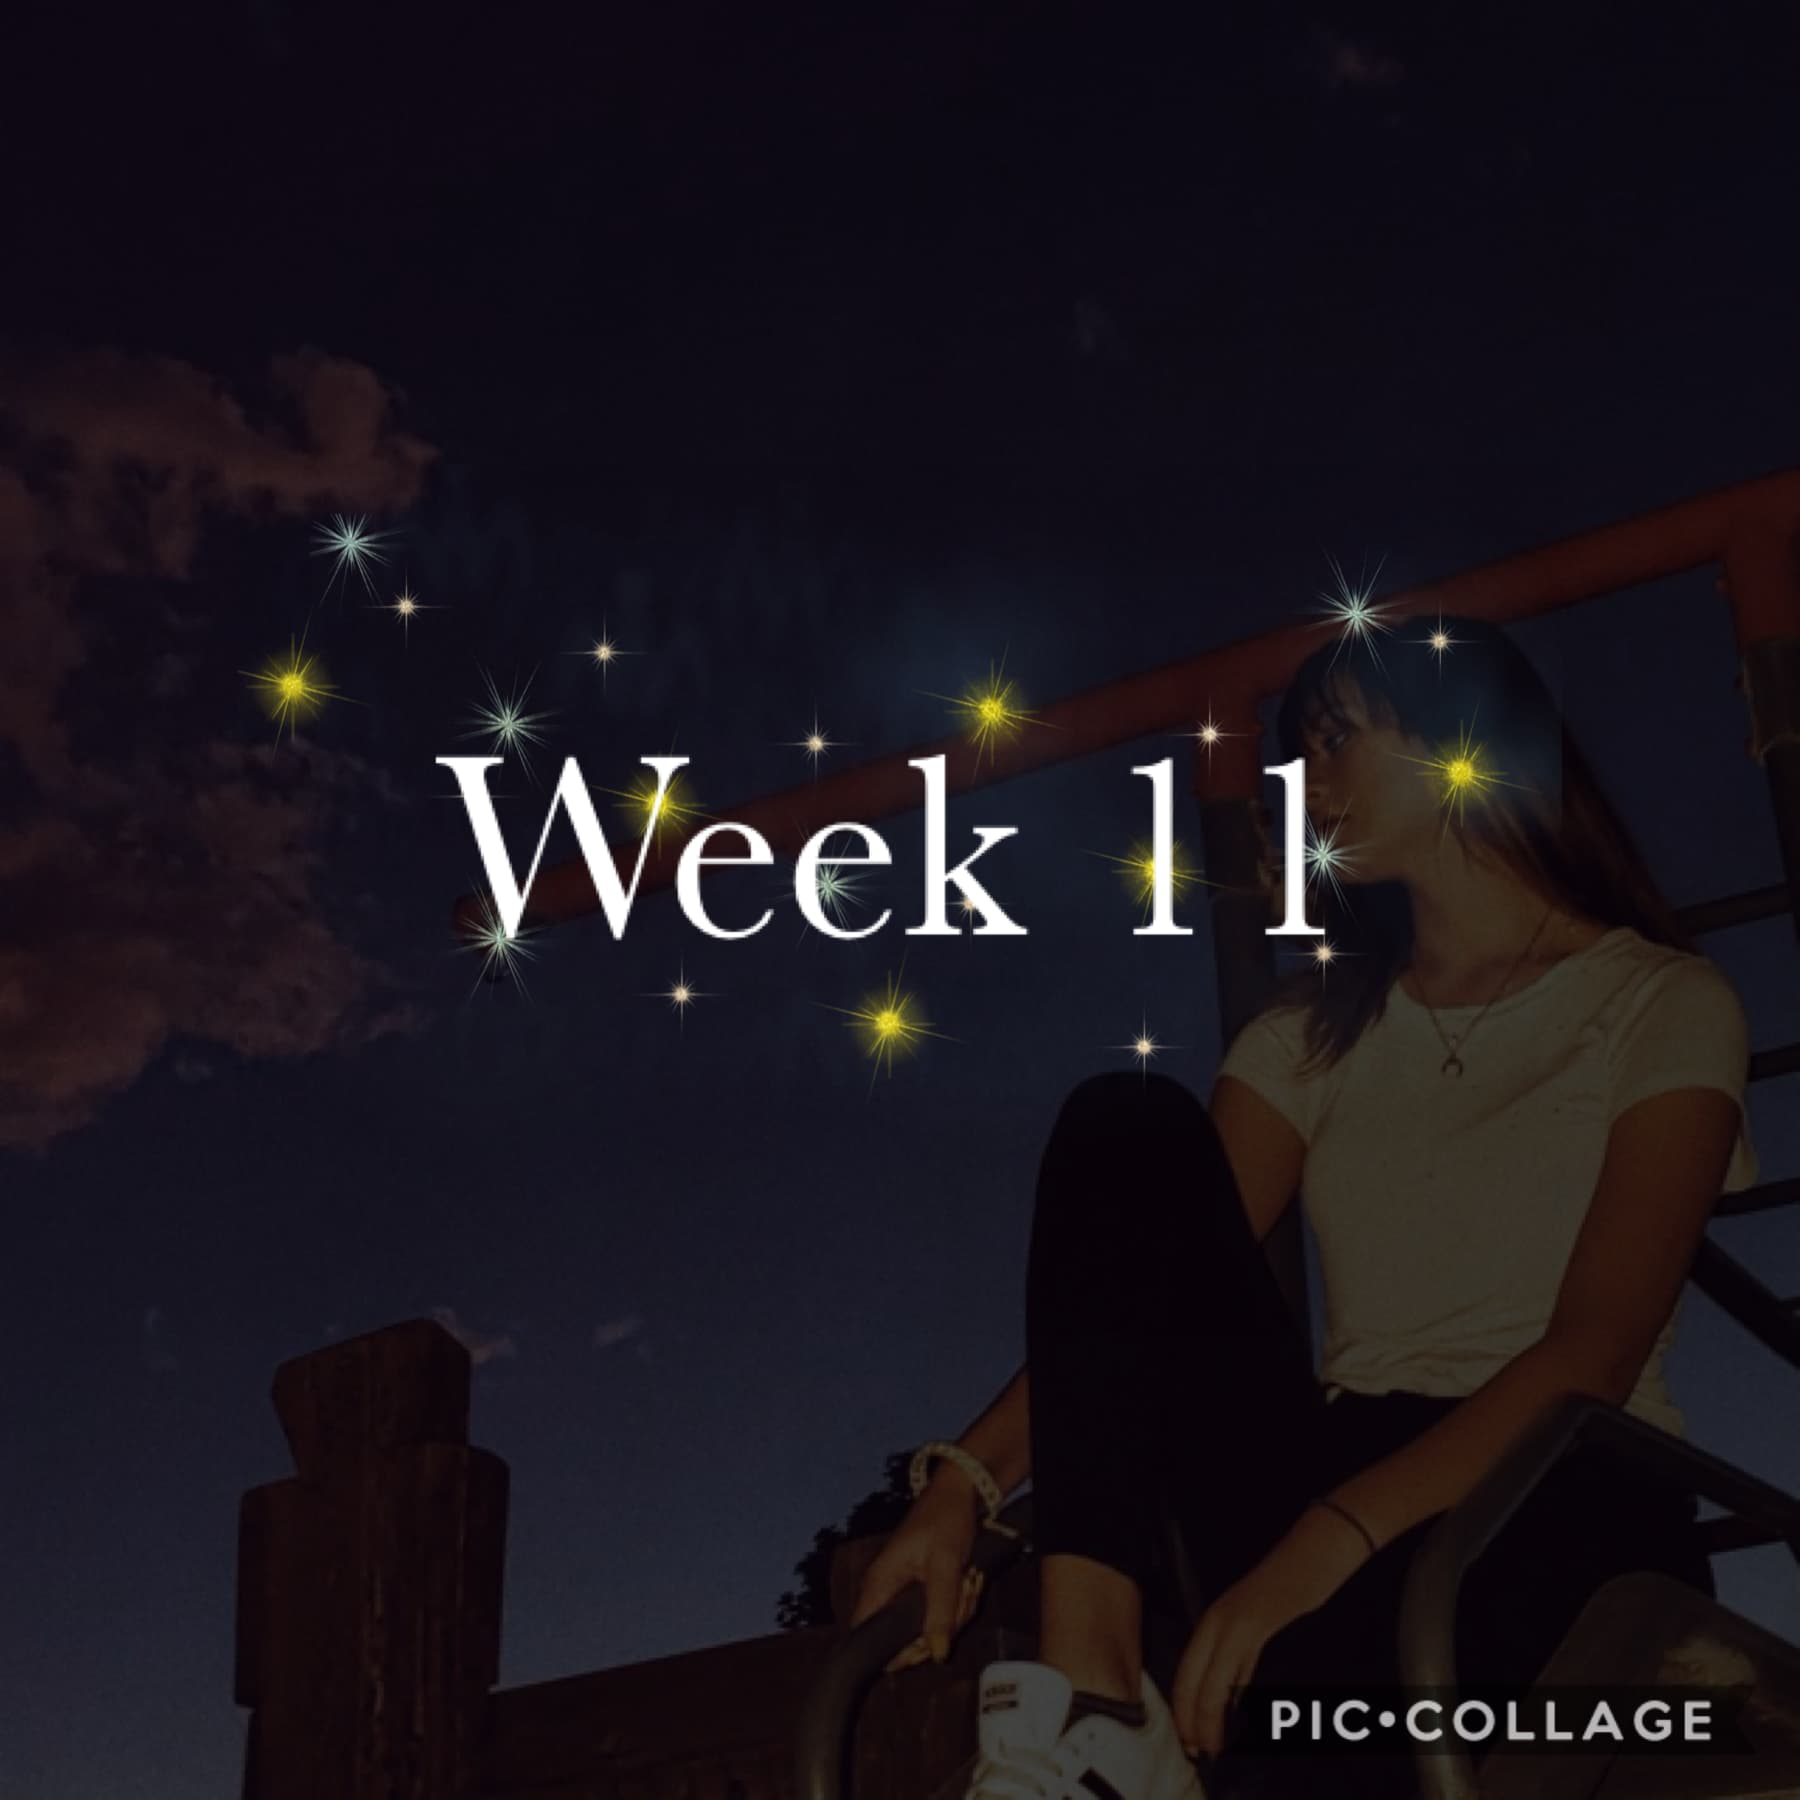 NEW WEEK  to make up for my disappearance, this will be opened monday-friday for this week, and i will have A LOT OF DRAMA AND CRAZY TINGS GOING ON,   so don't miss it... * wink wink *